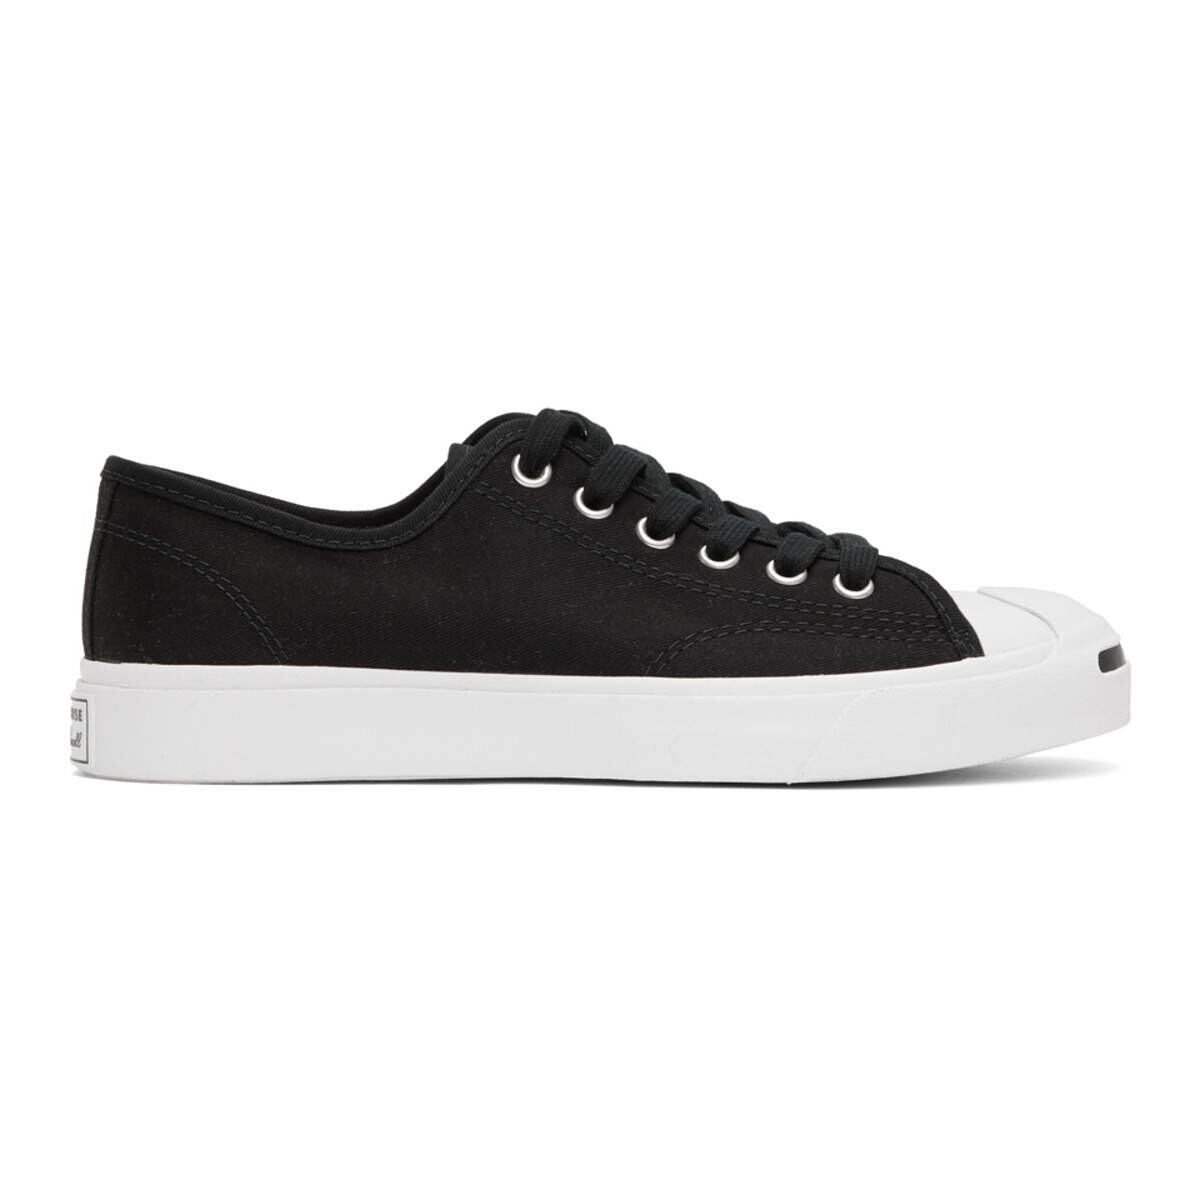 Converse Black Jack Purcell First In Class OX Sneakers Ssense USA MEN Men SHOES Mens SNEAKER